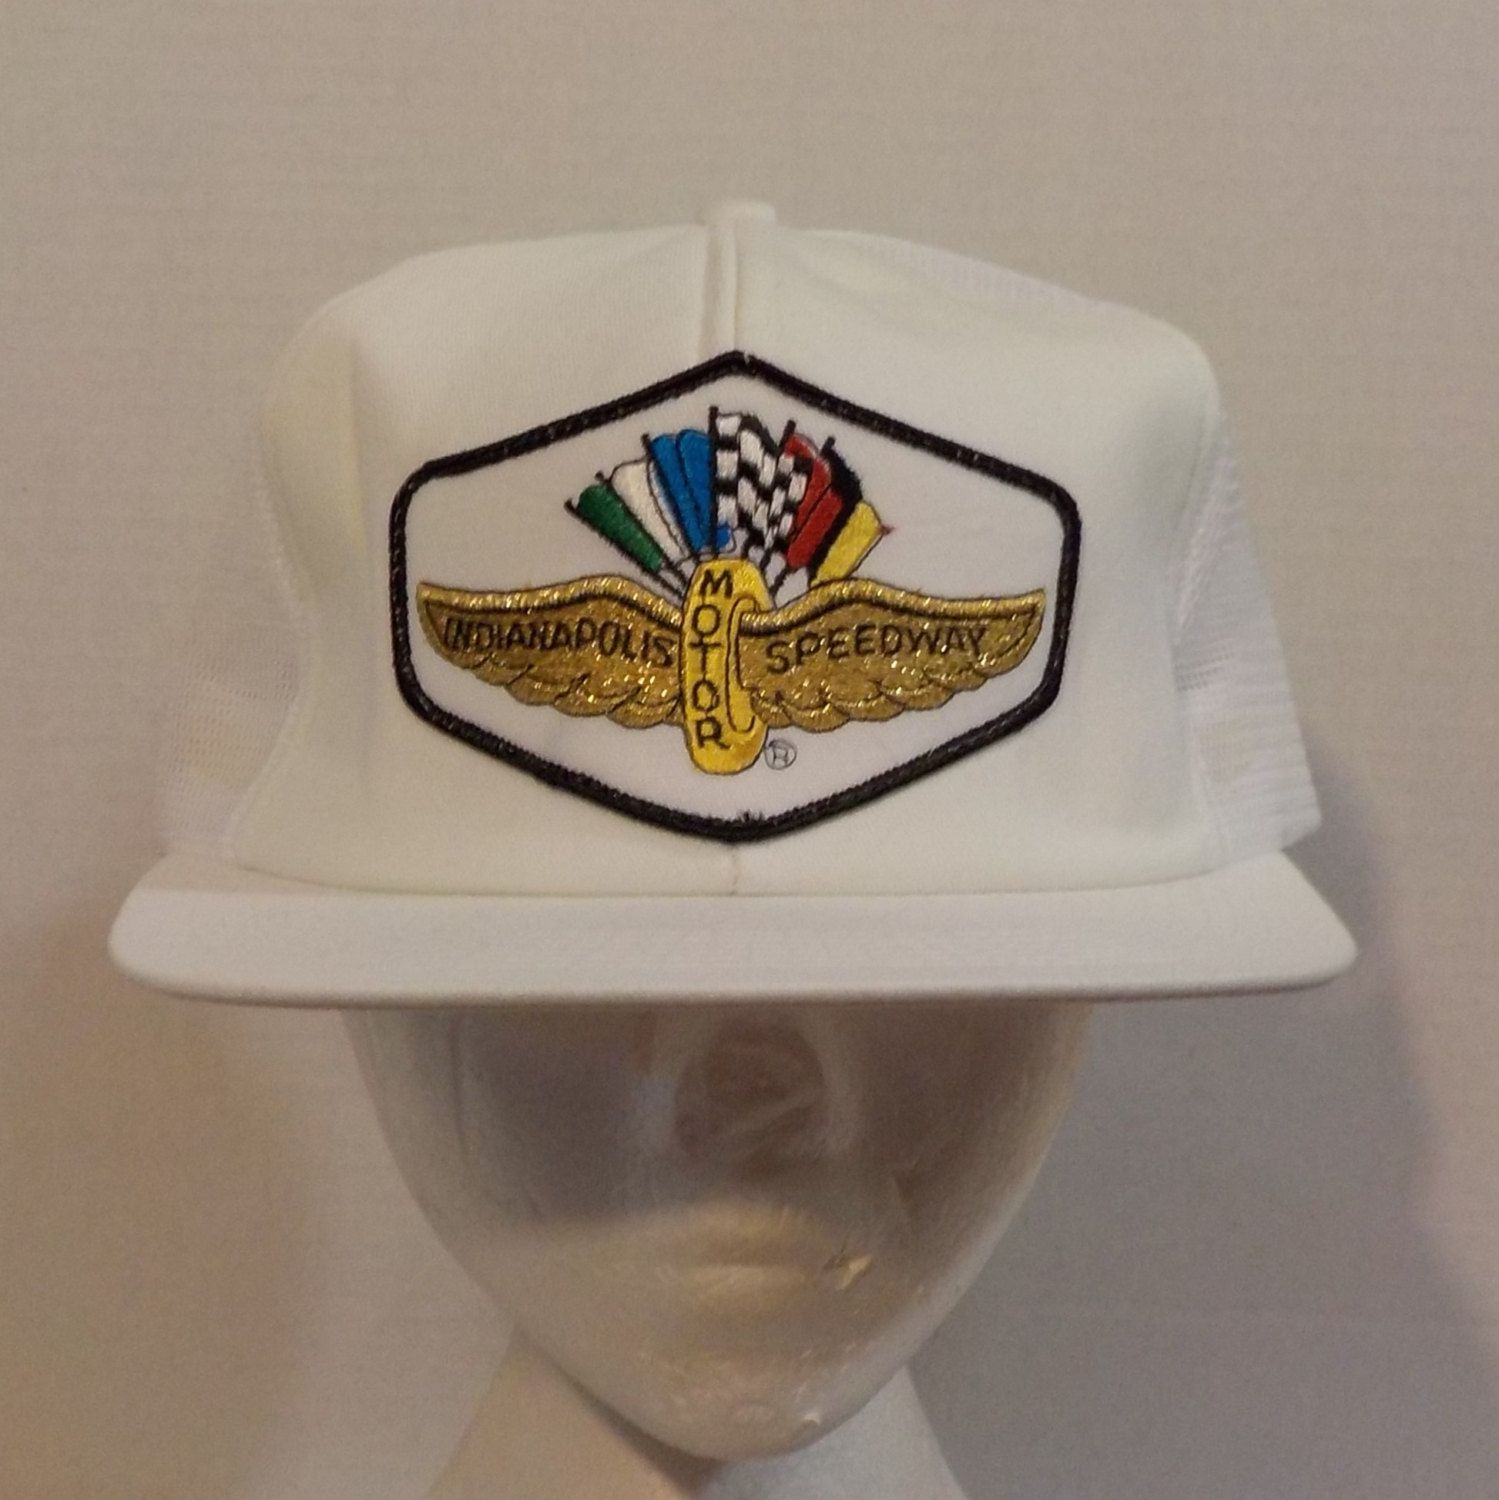 20d0ea1f9c2 Indianapolis Motor Speedway Snapback Baseball Truckers Cap Hat from the  eighty s Logo Patch by LouisandRileys on Etsy